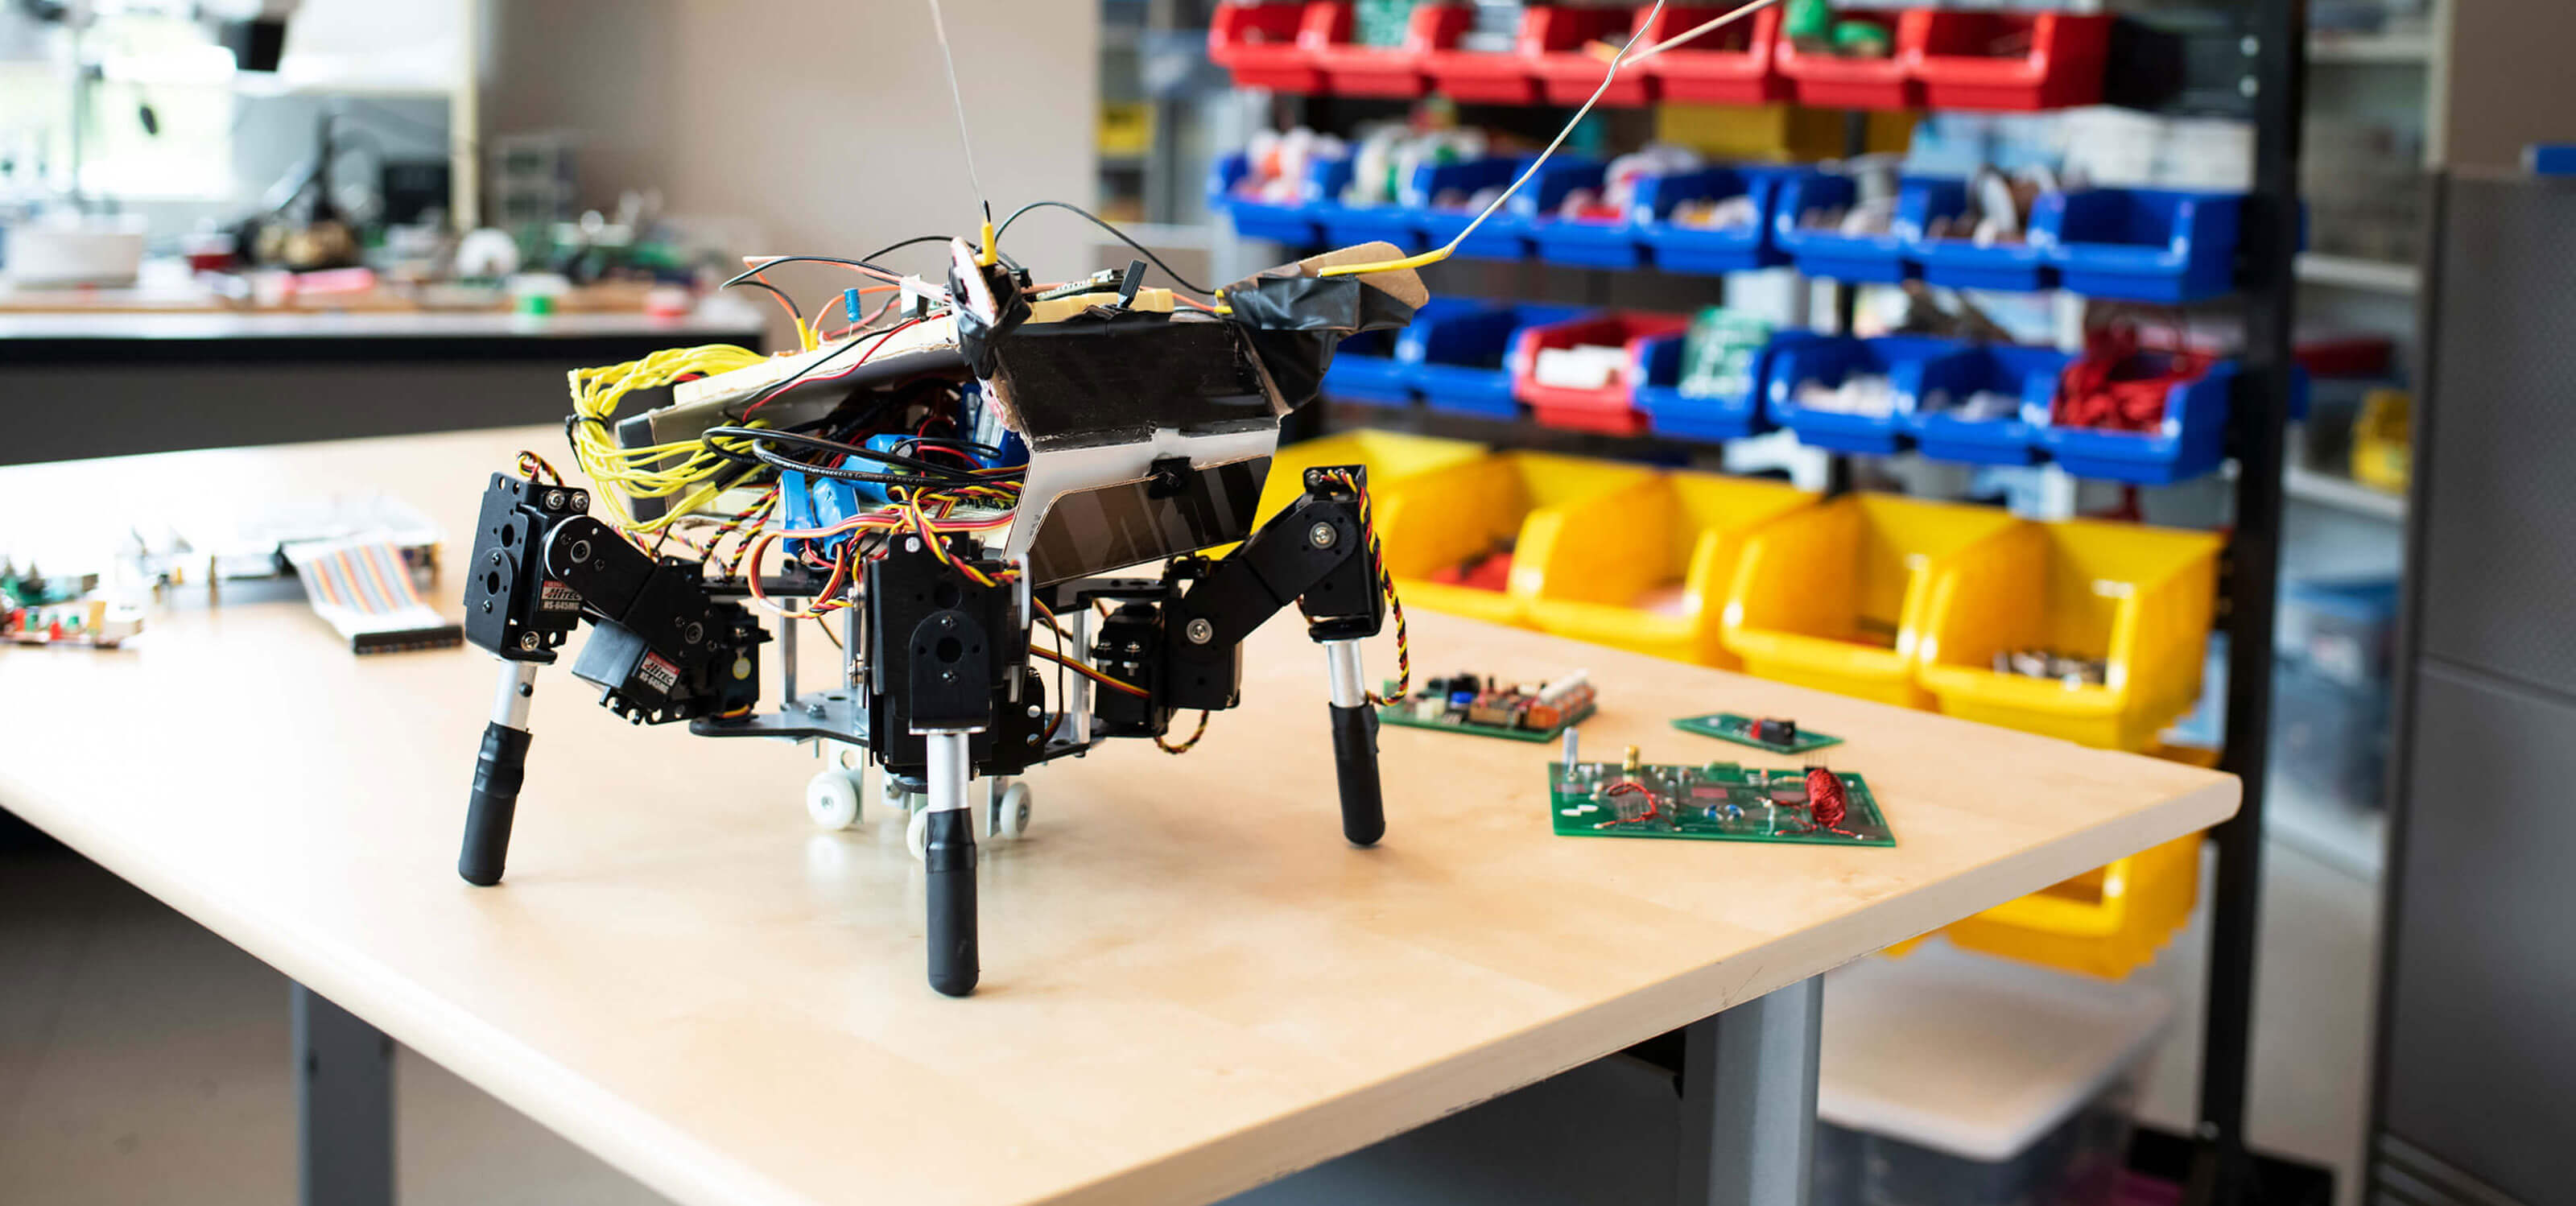 A robot sits on a table in the DigiPen computer engineering lab